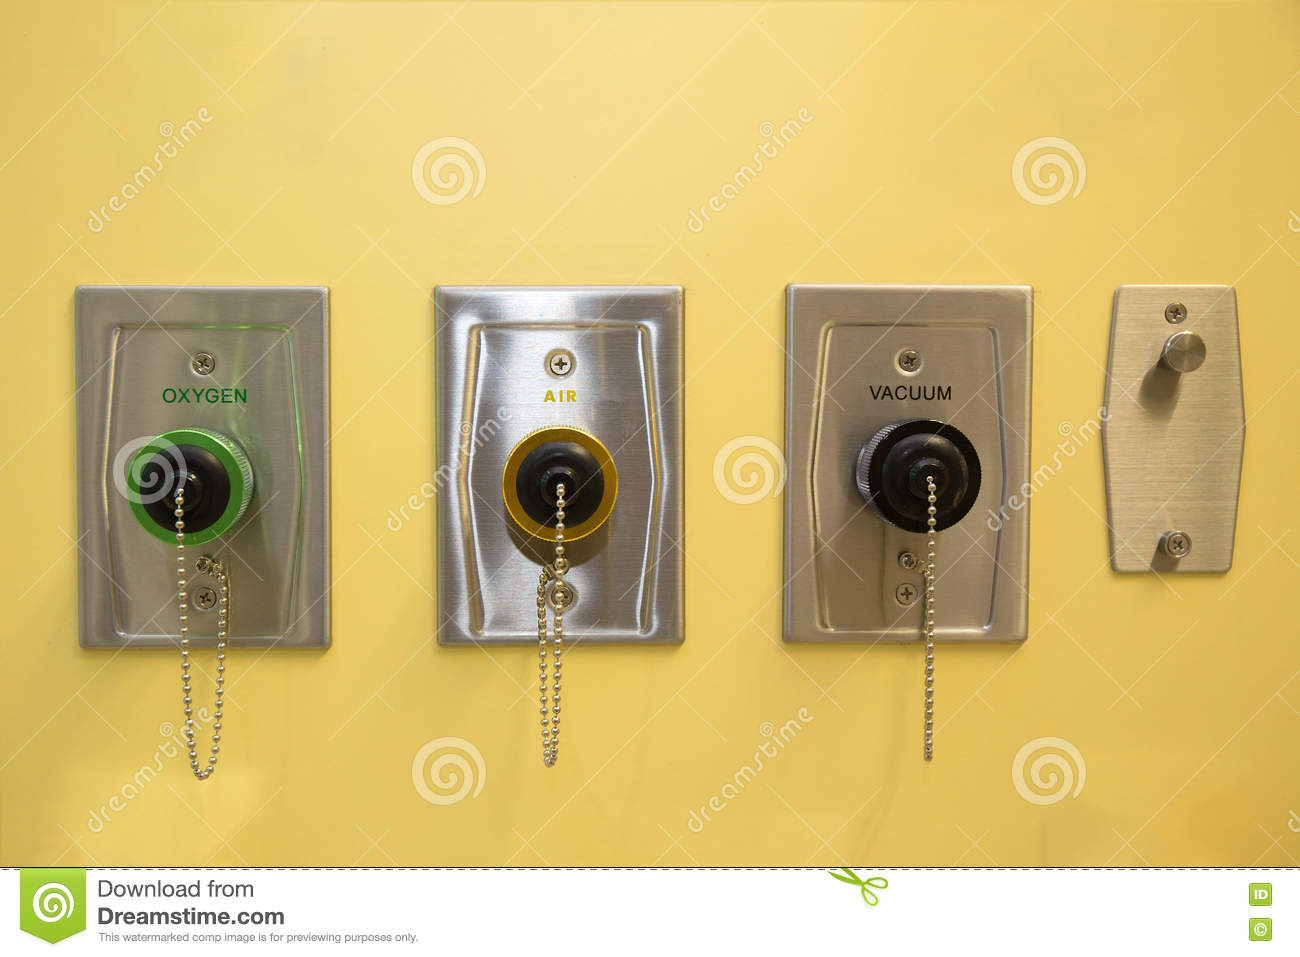 Oxygen Equipment In An Hospital Room Stock Photo - Image: 26349770